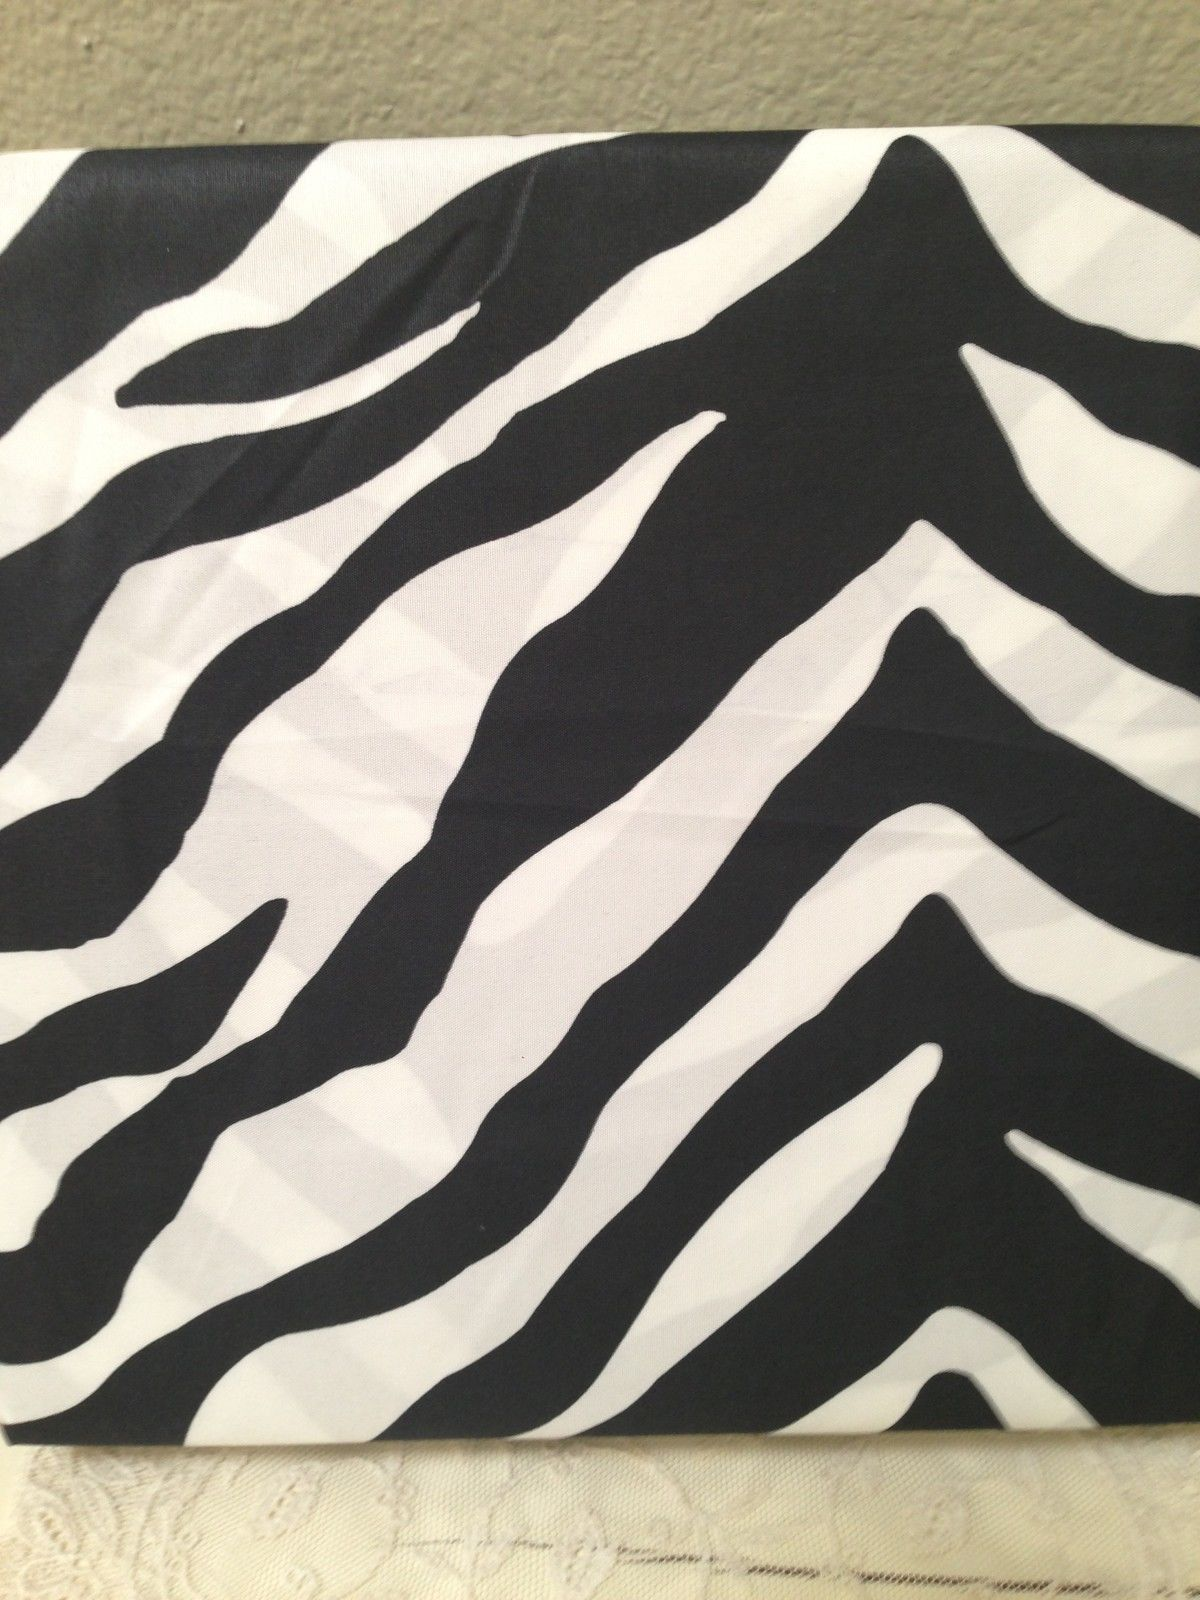 Cynthia Rowley BLACK & WHITE ZEBRA STRIPES TWIN SHEET SET 3PC NIP